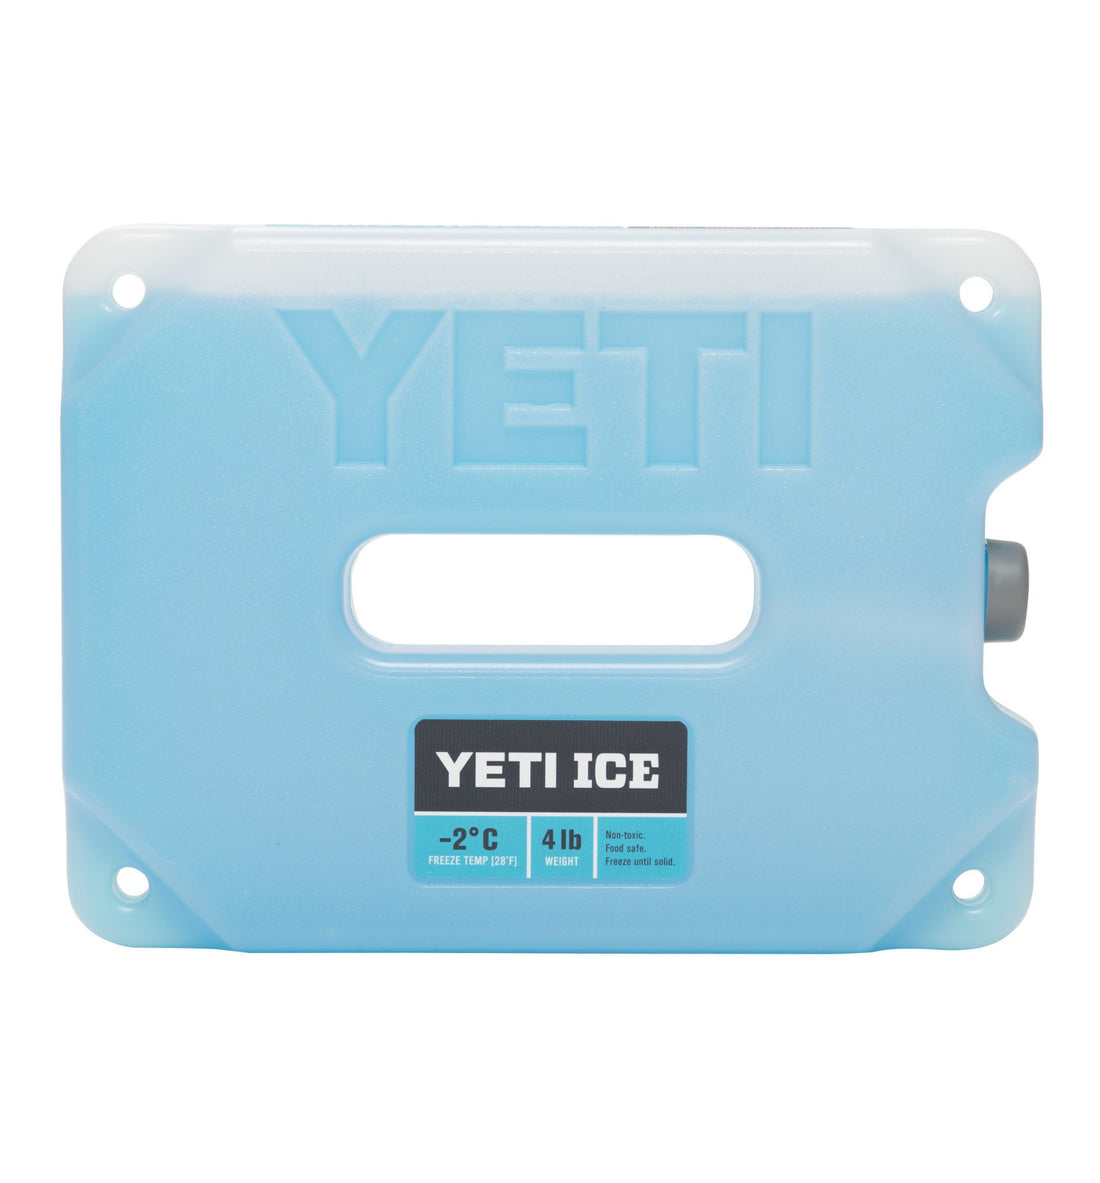 Yeti Ice, 4 lb 2C - Outdoor Living/Travel - Iron and Resin